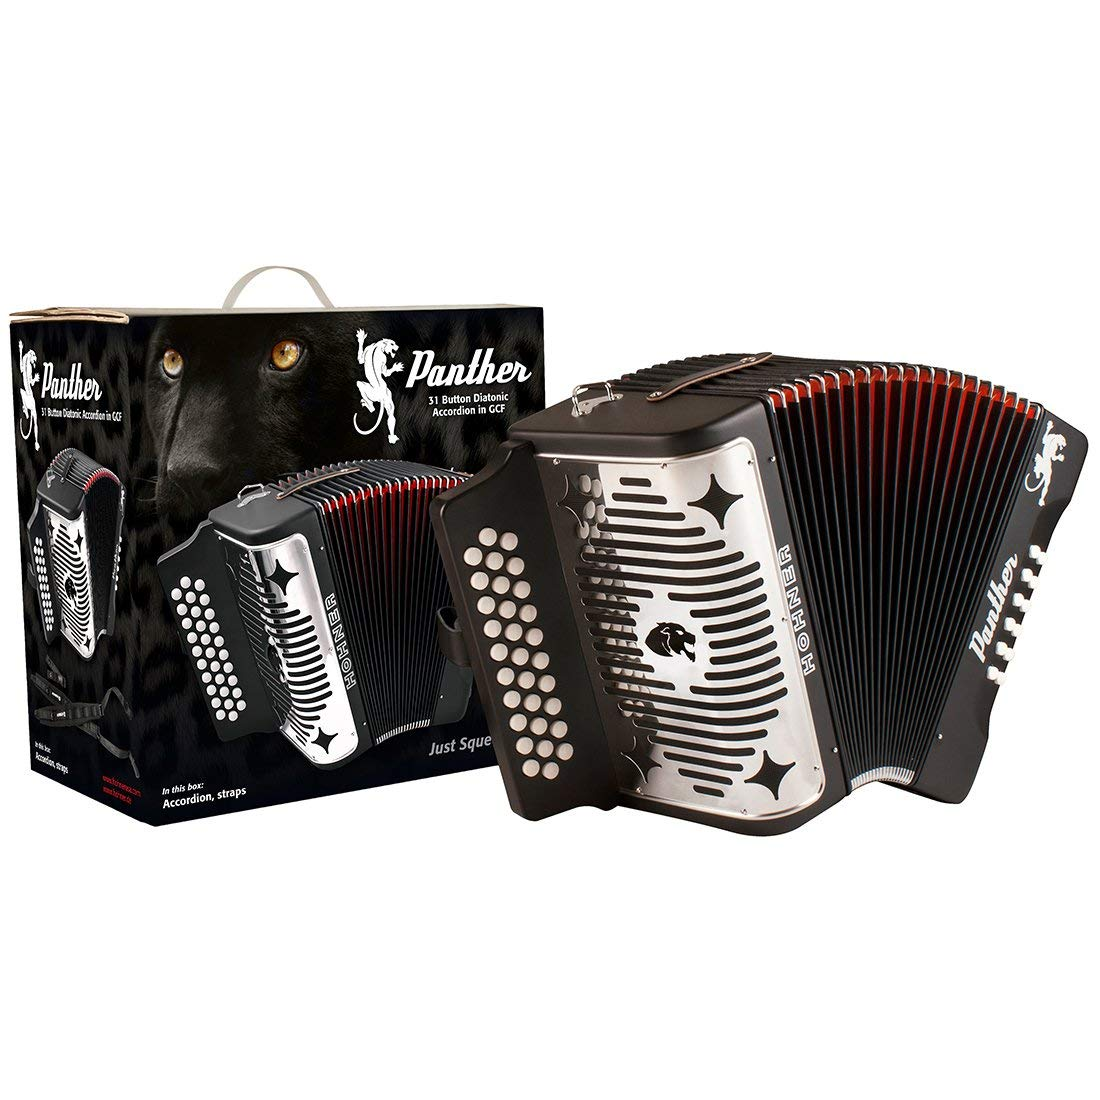 Hohner Panther 3100FB Diatonic Accordion Comprehensive Starter Kit with Gig Bag, Instruction Book and Cleaning Cloth by Hohner Accordions (Image #3)